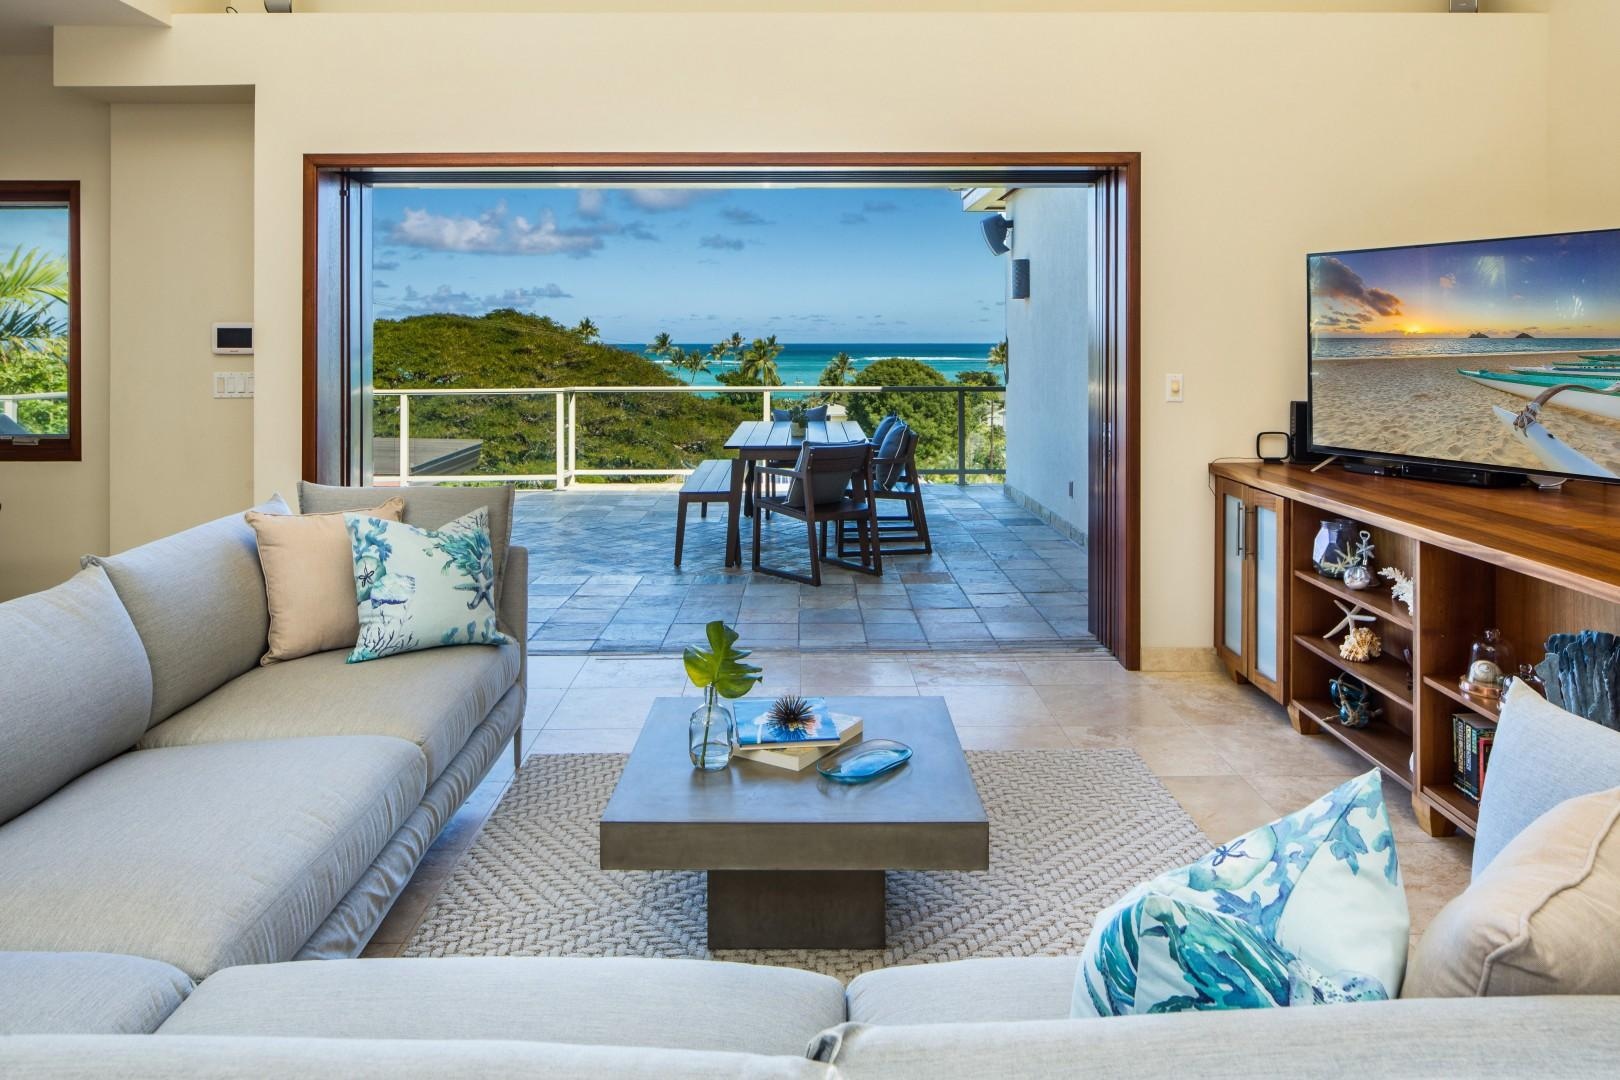 Second floor living room, looking out to the front lanai with sweeping ocean views of the Mokulua Islands.